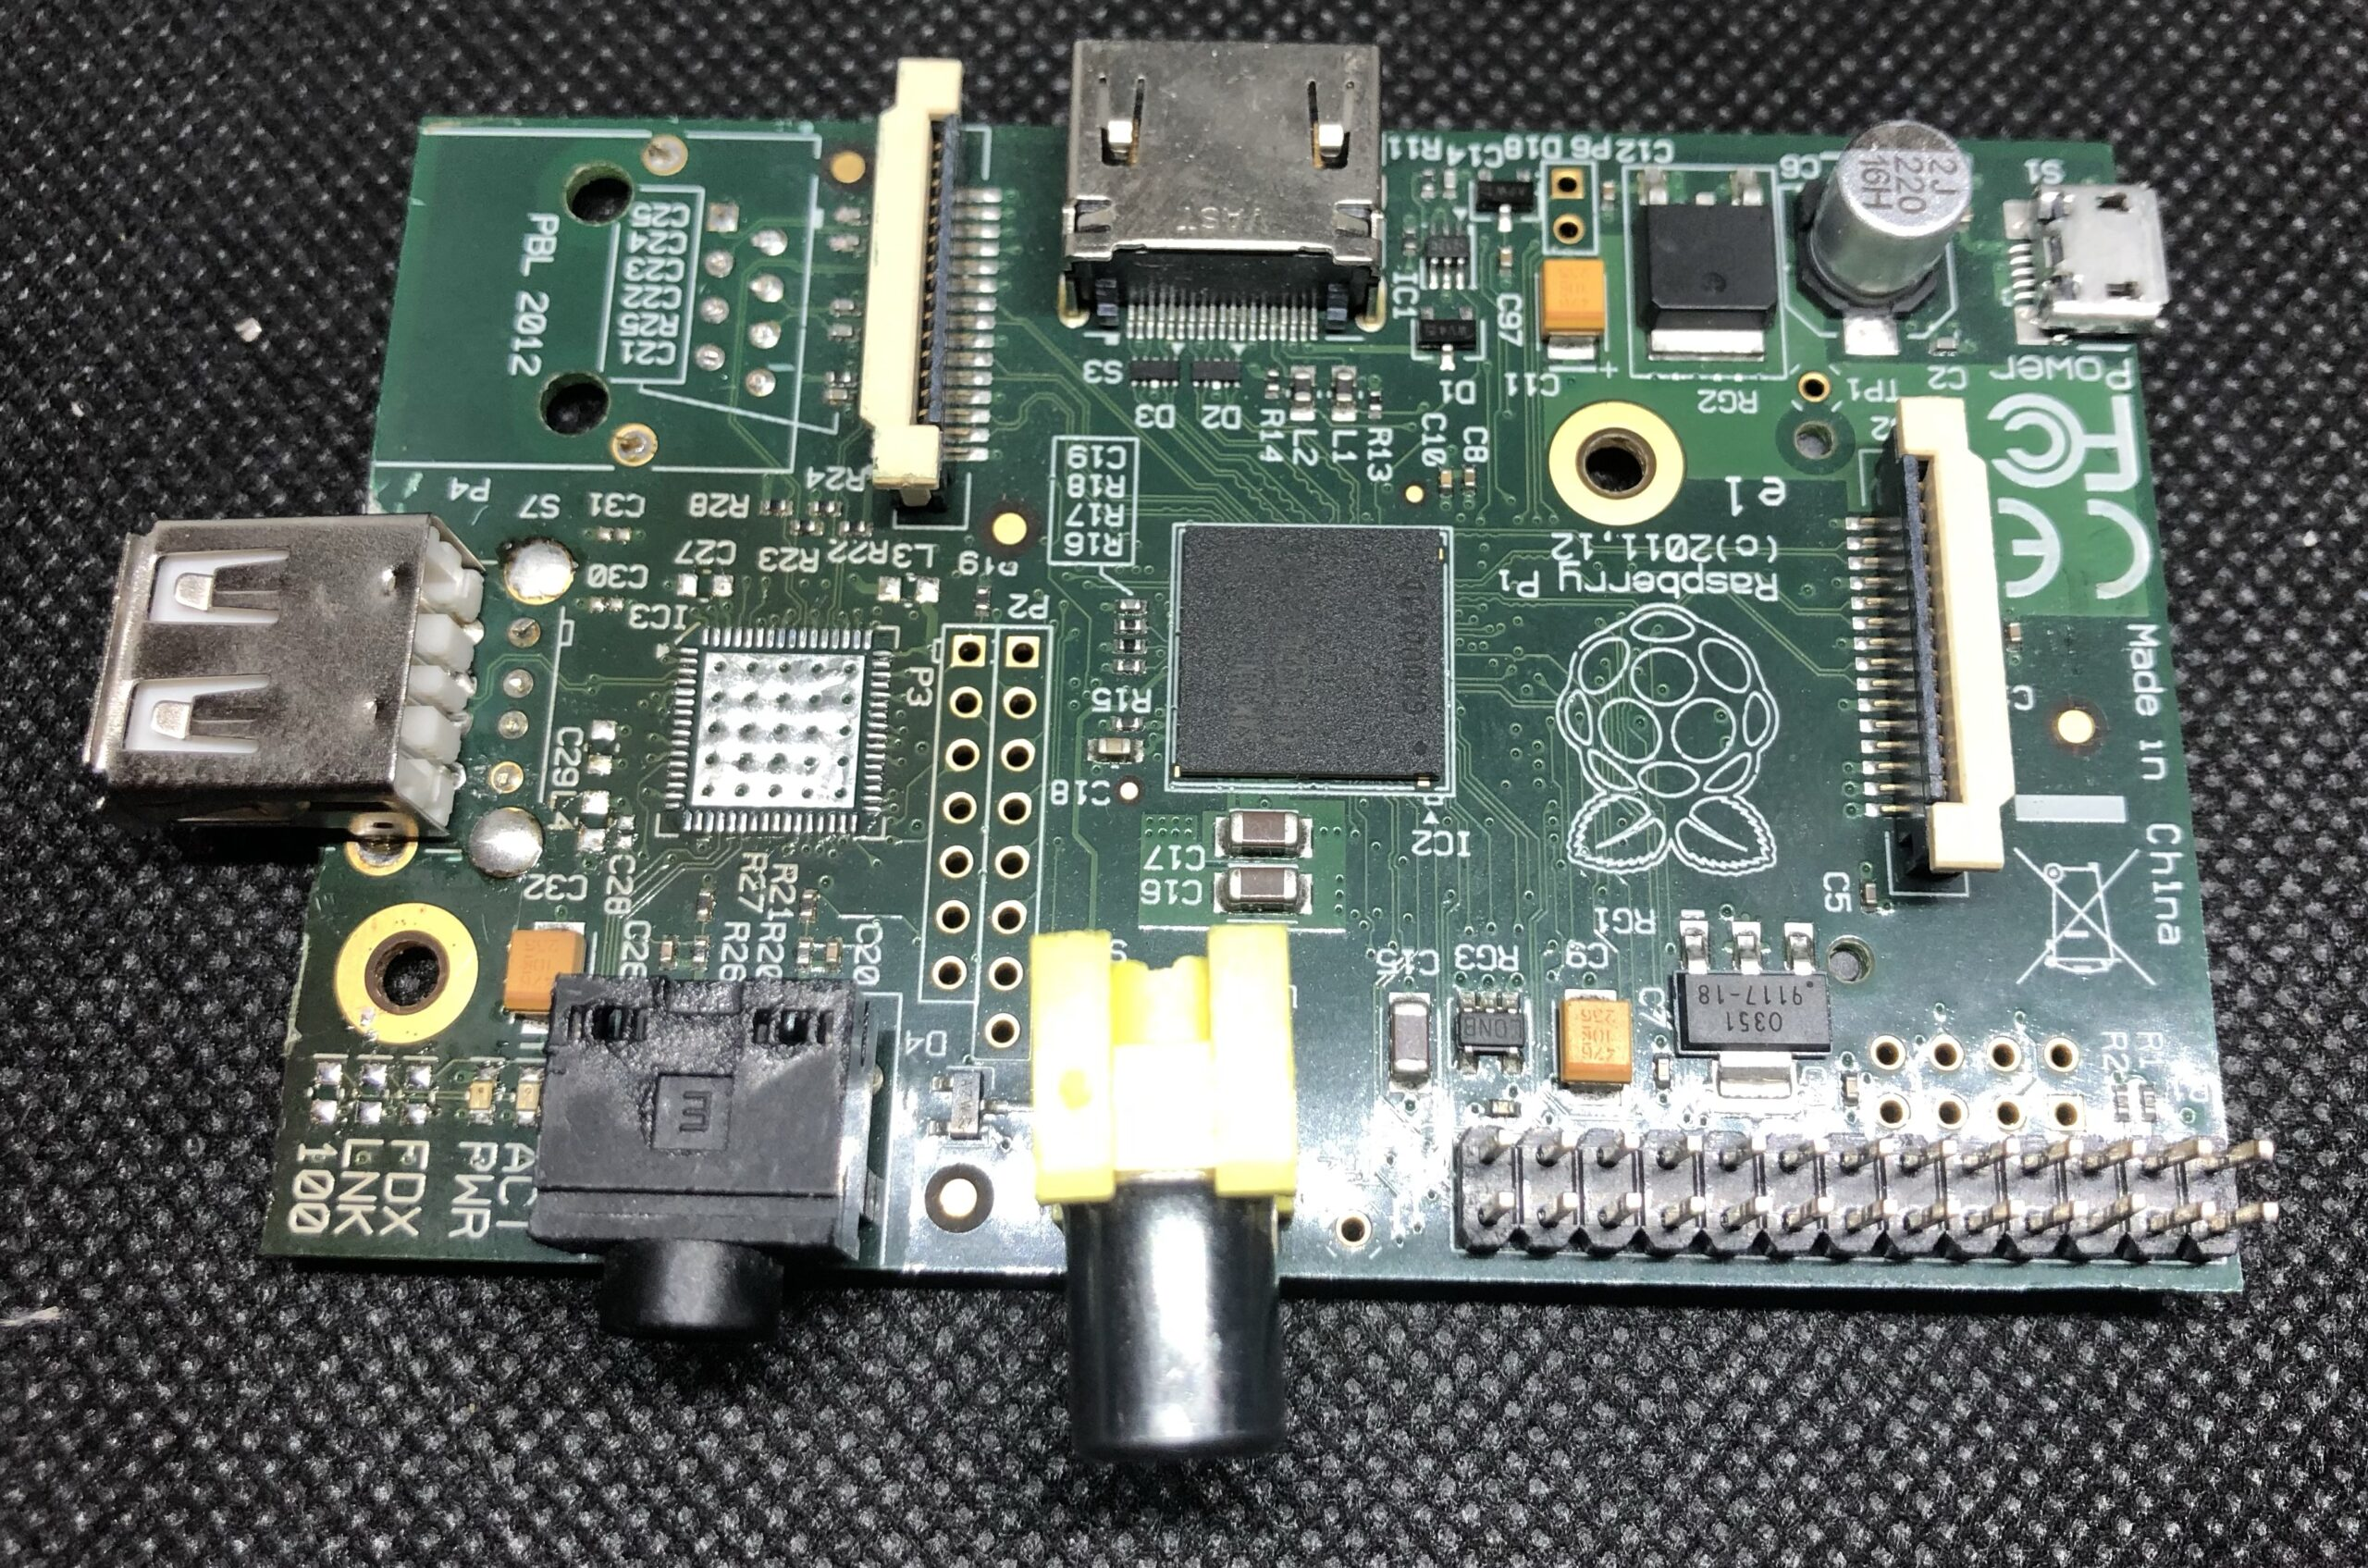 I bought 200+ Raspberry Pi Model B's and I'm going to fix them! Part 5 - James Dawson